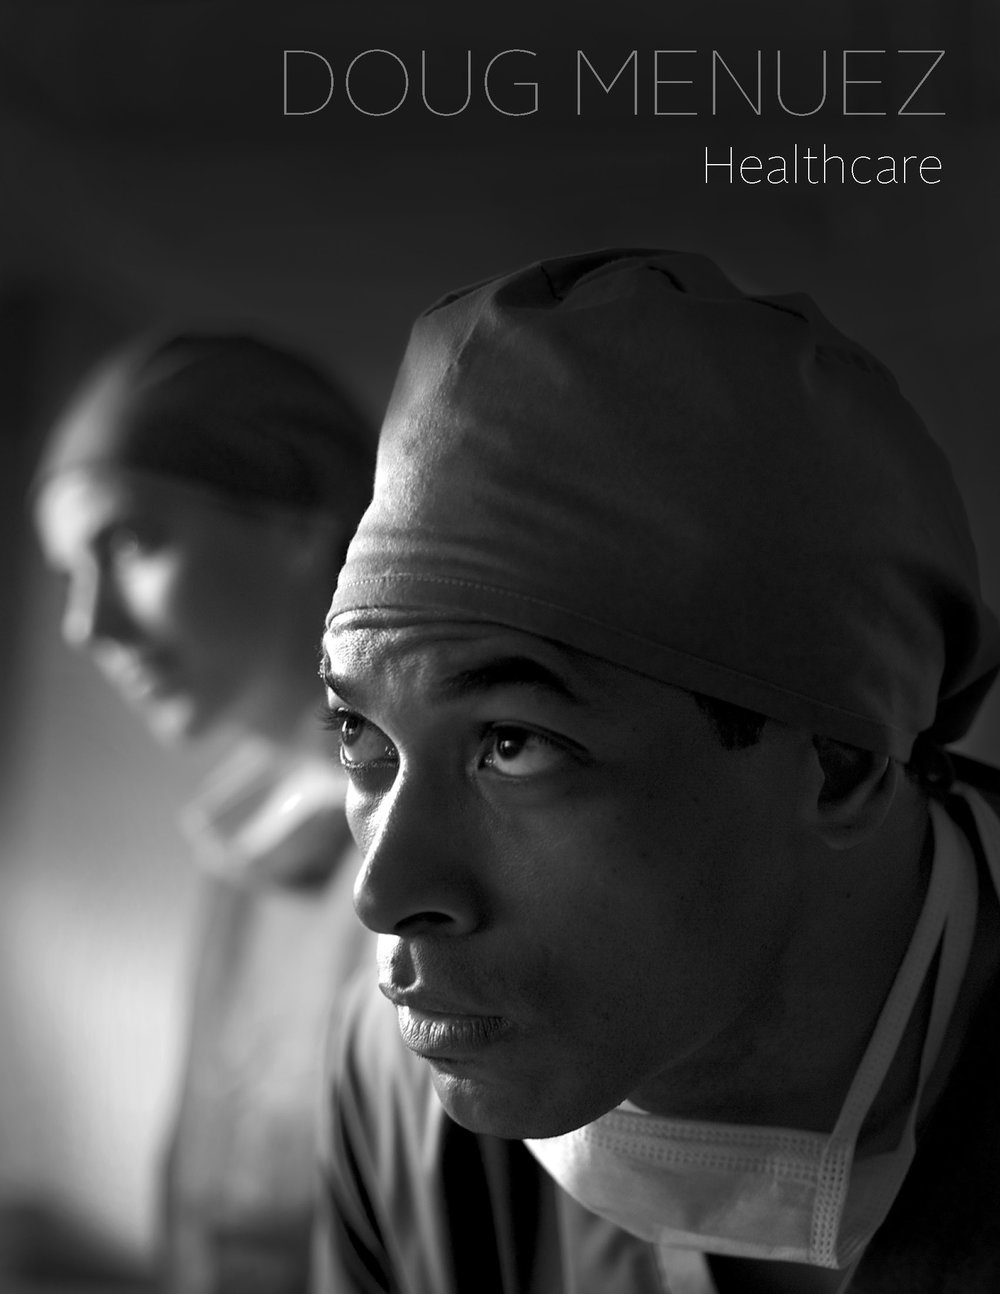 NEW HEALTHCARE BY MENUEZ - DOWNLOAD PDF